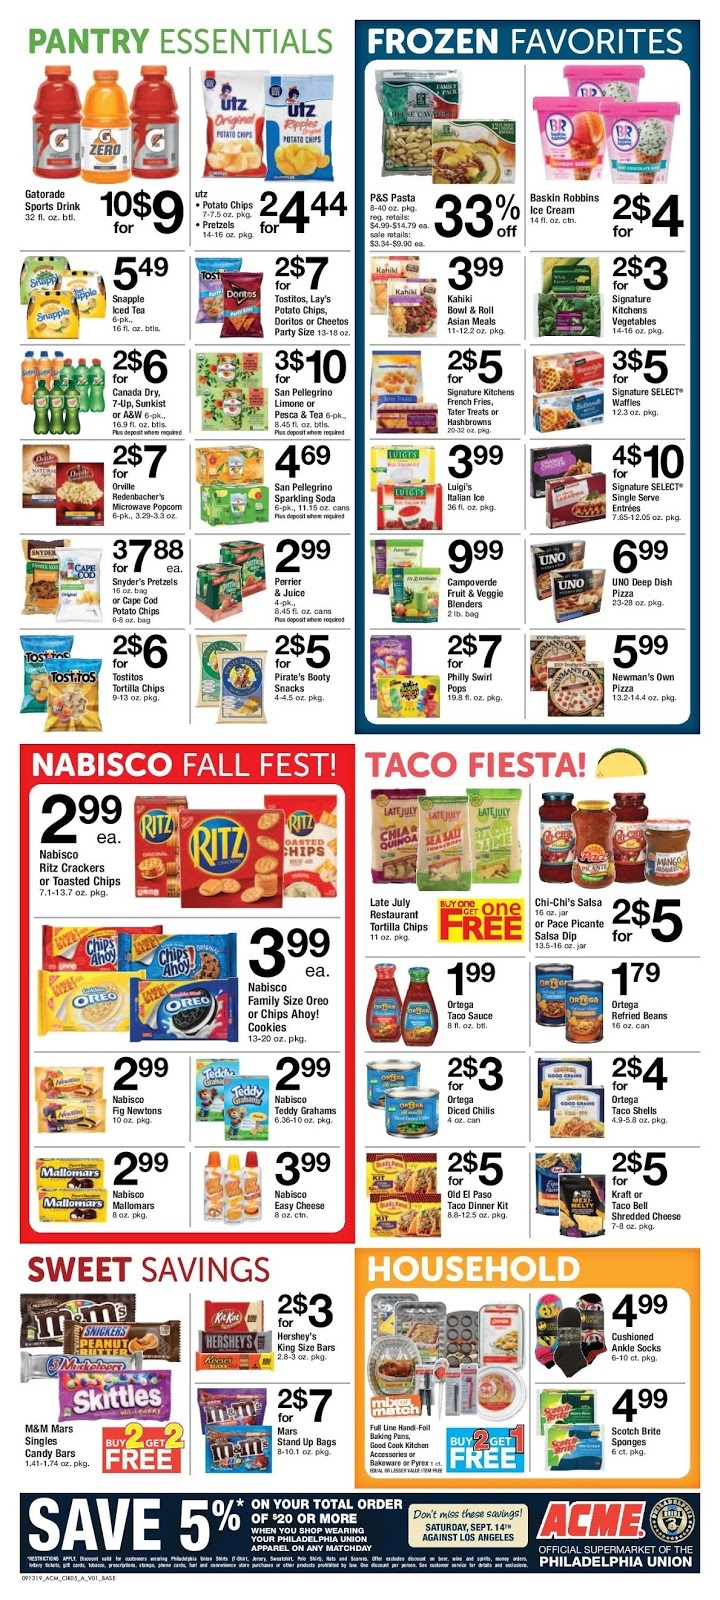 Acme Weekly Ad September 13 - 19, 2019